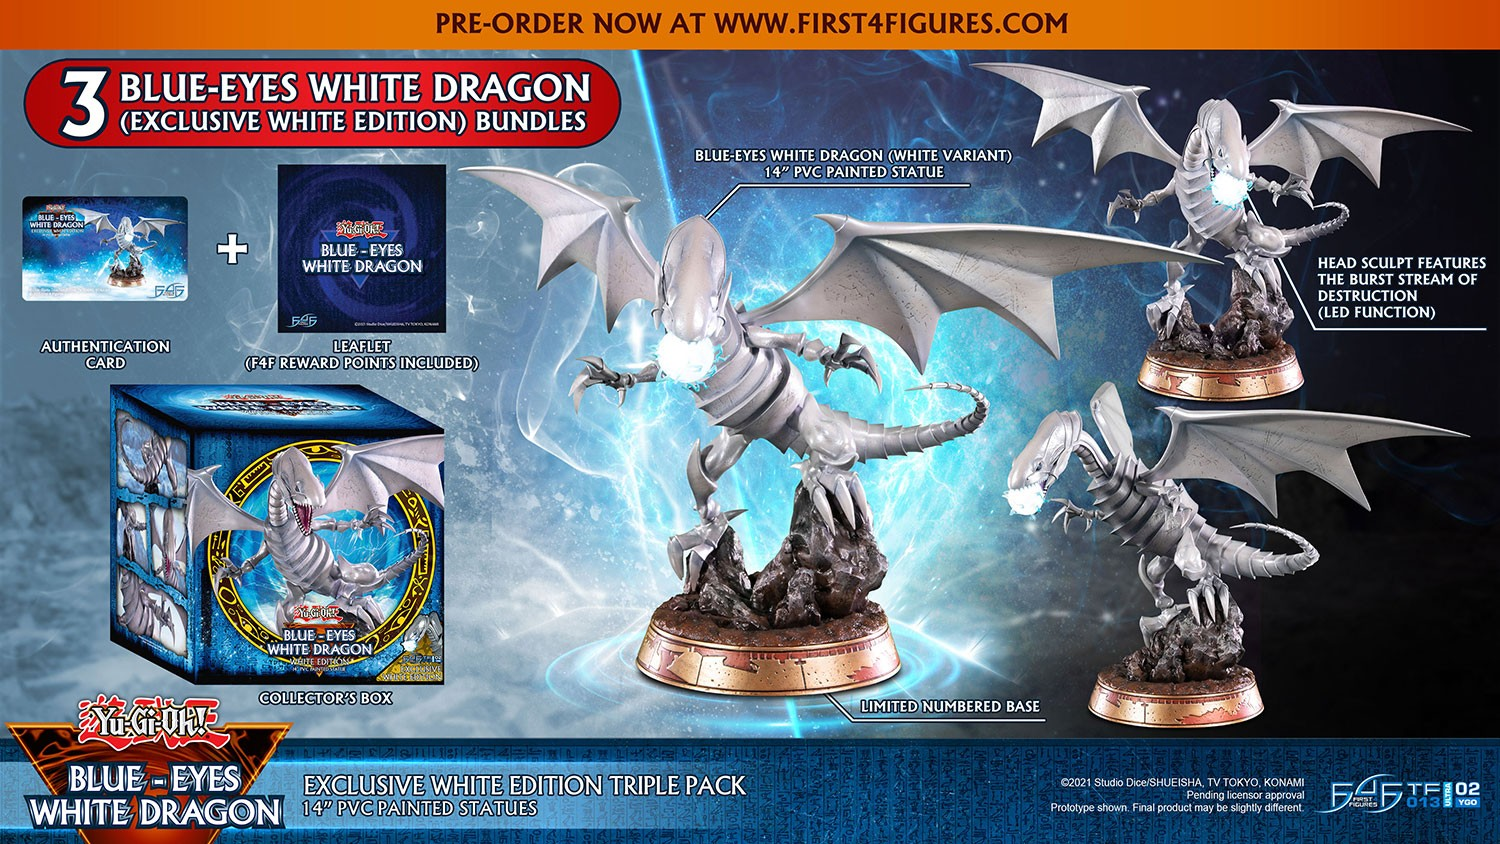 Yu-Gi-Oh! – Blue-Eyes White Dragon (Exclusive White Edition Triple Pack)